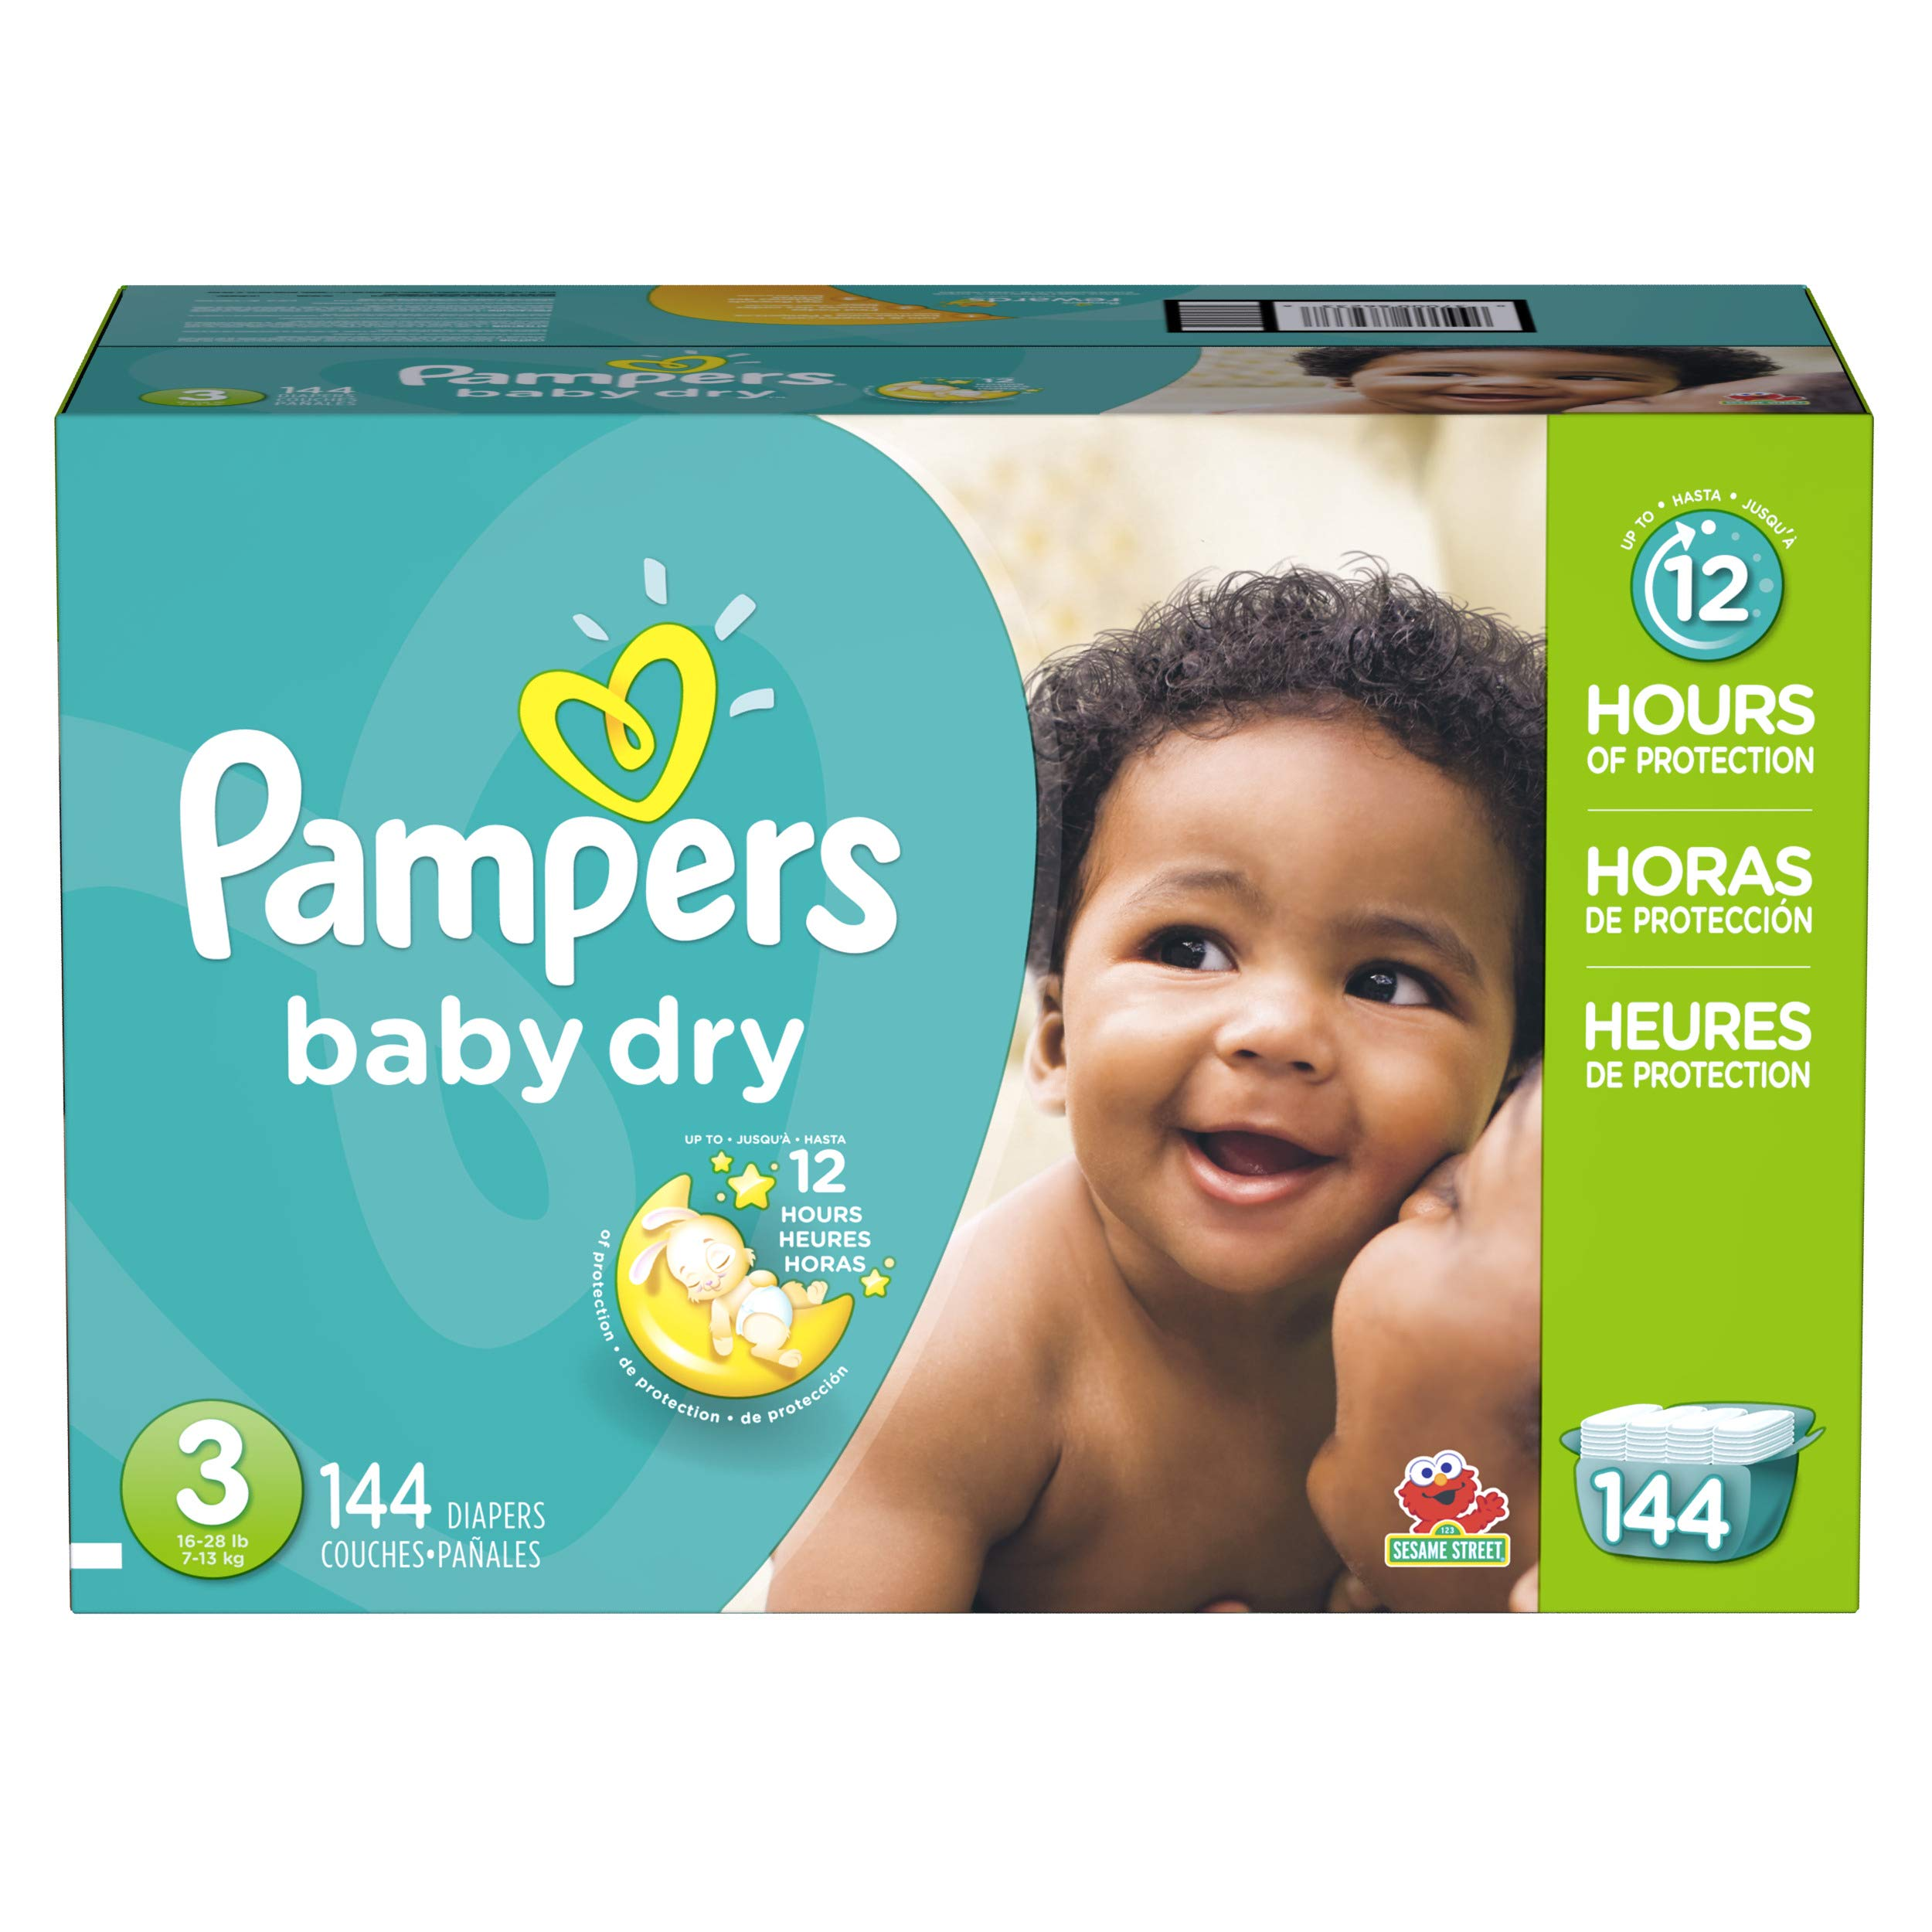 Diapers Size 3, 144 Count - Pampers Baby Dry Disposable Baby Diapers, Giant Pack by Pampers